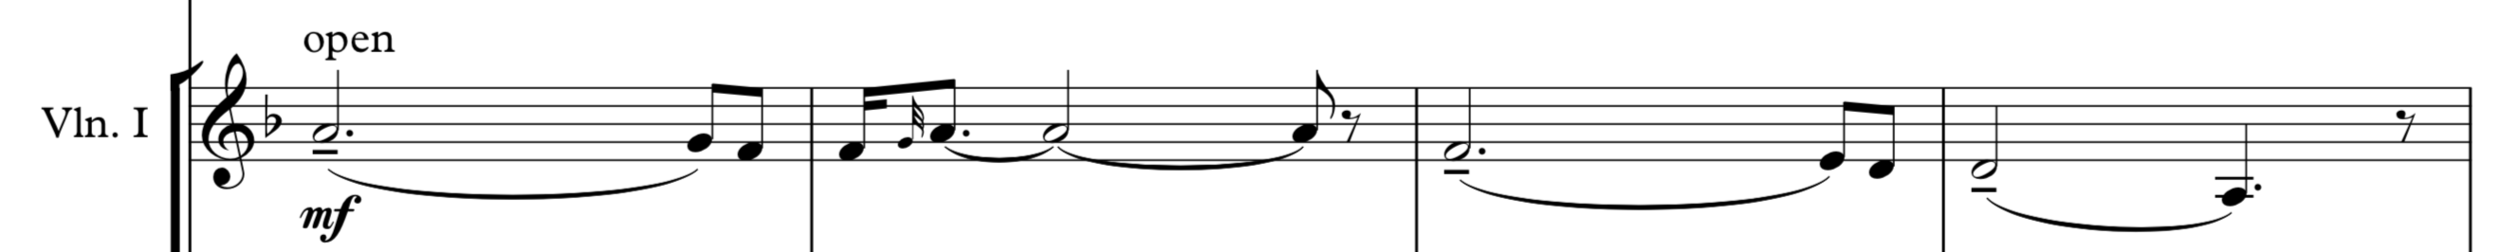 Main theme, first appearing in the violins.